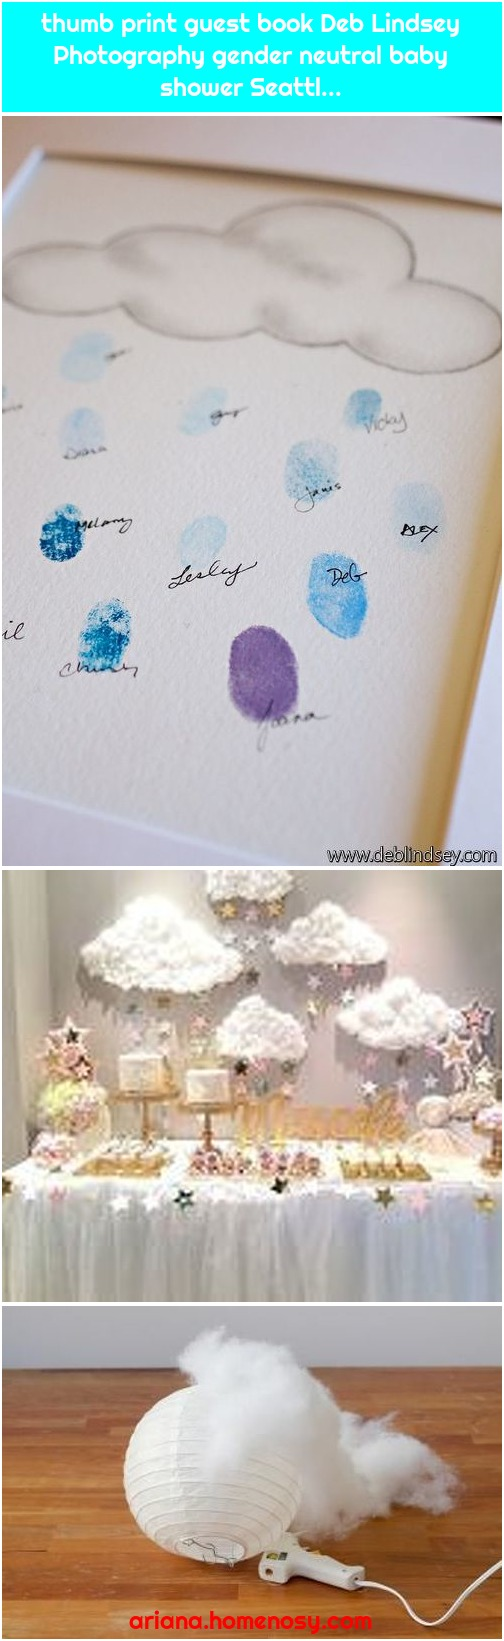 thumb print guest book Deb Lindsey Photography gender neutral baby shower Seattl...